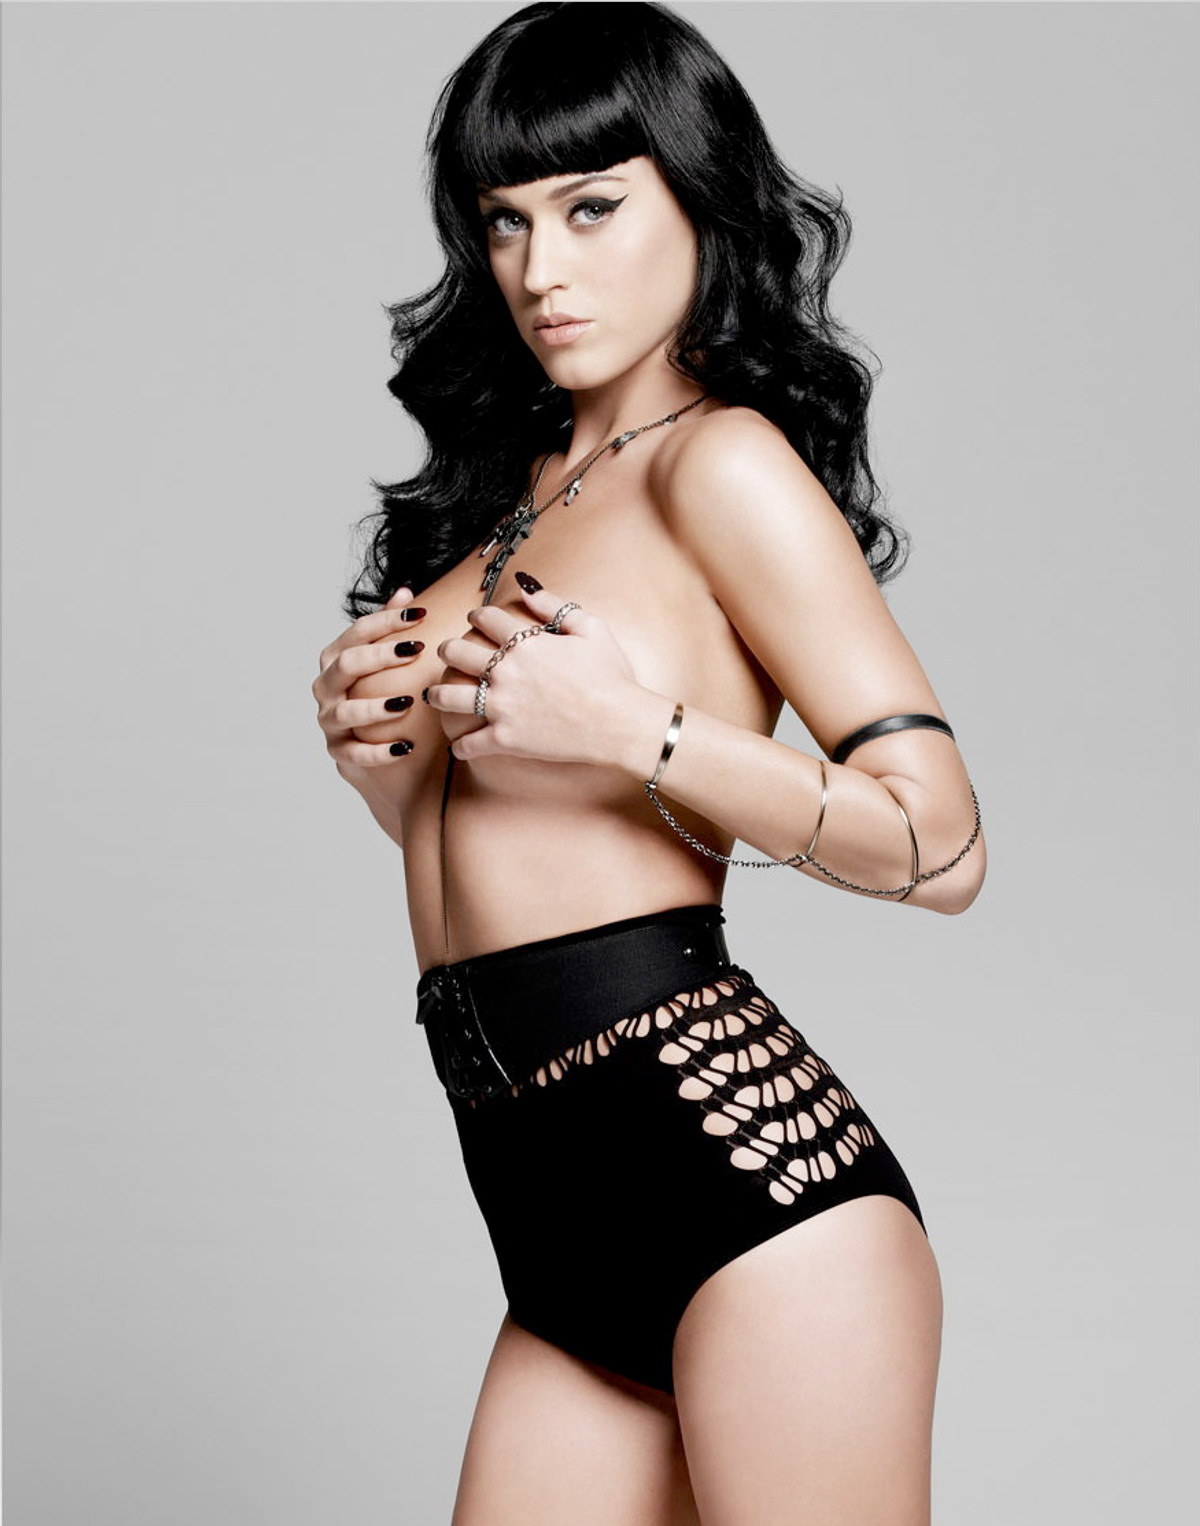 http://1.bp.blogspot.com/-ygyPAuS1IGU/Ta5Lt0GDpxI/AAAAAAAAA-w/OFkKgDhd2GE/s1600/56607_katy_perry_esquire_uk_august_outtake_2010_6Xt8pPL_122_38lo.jpg